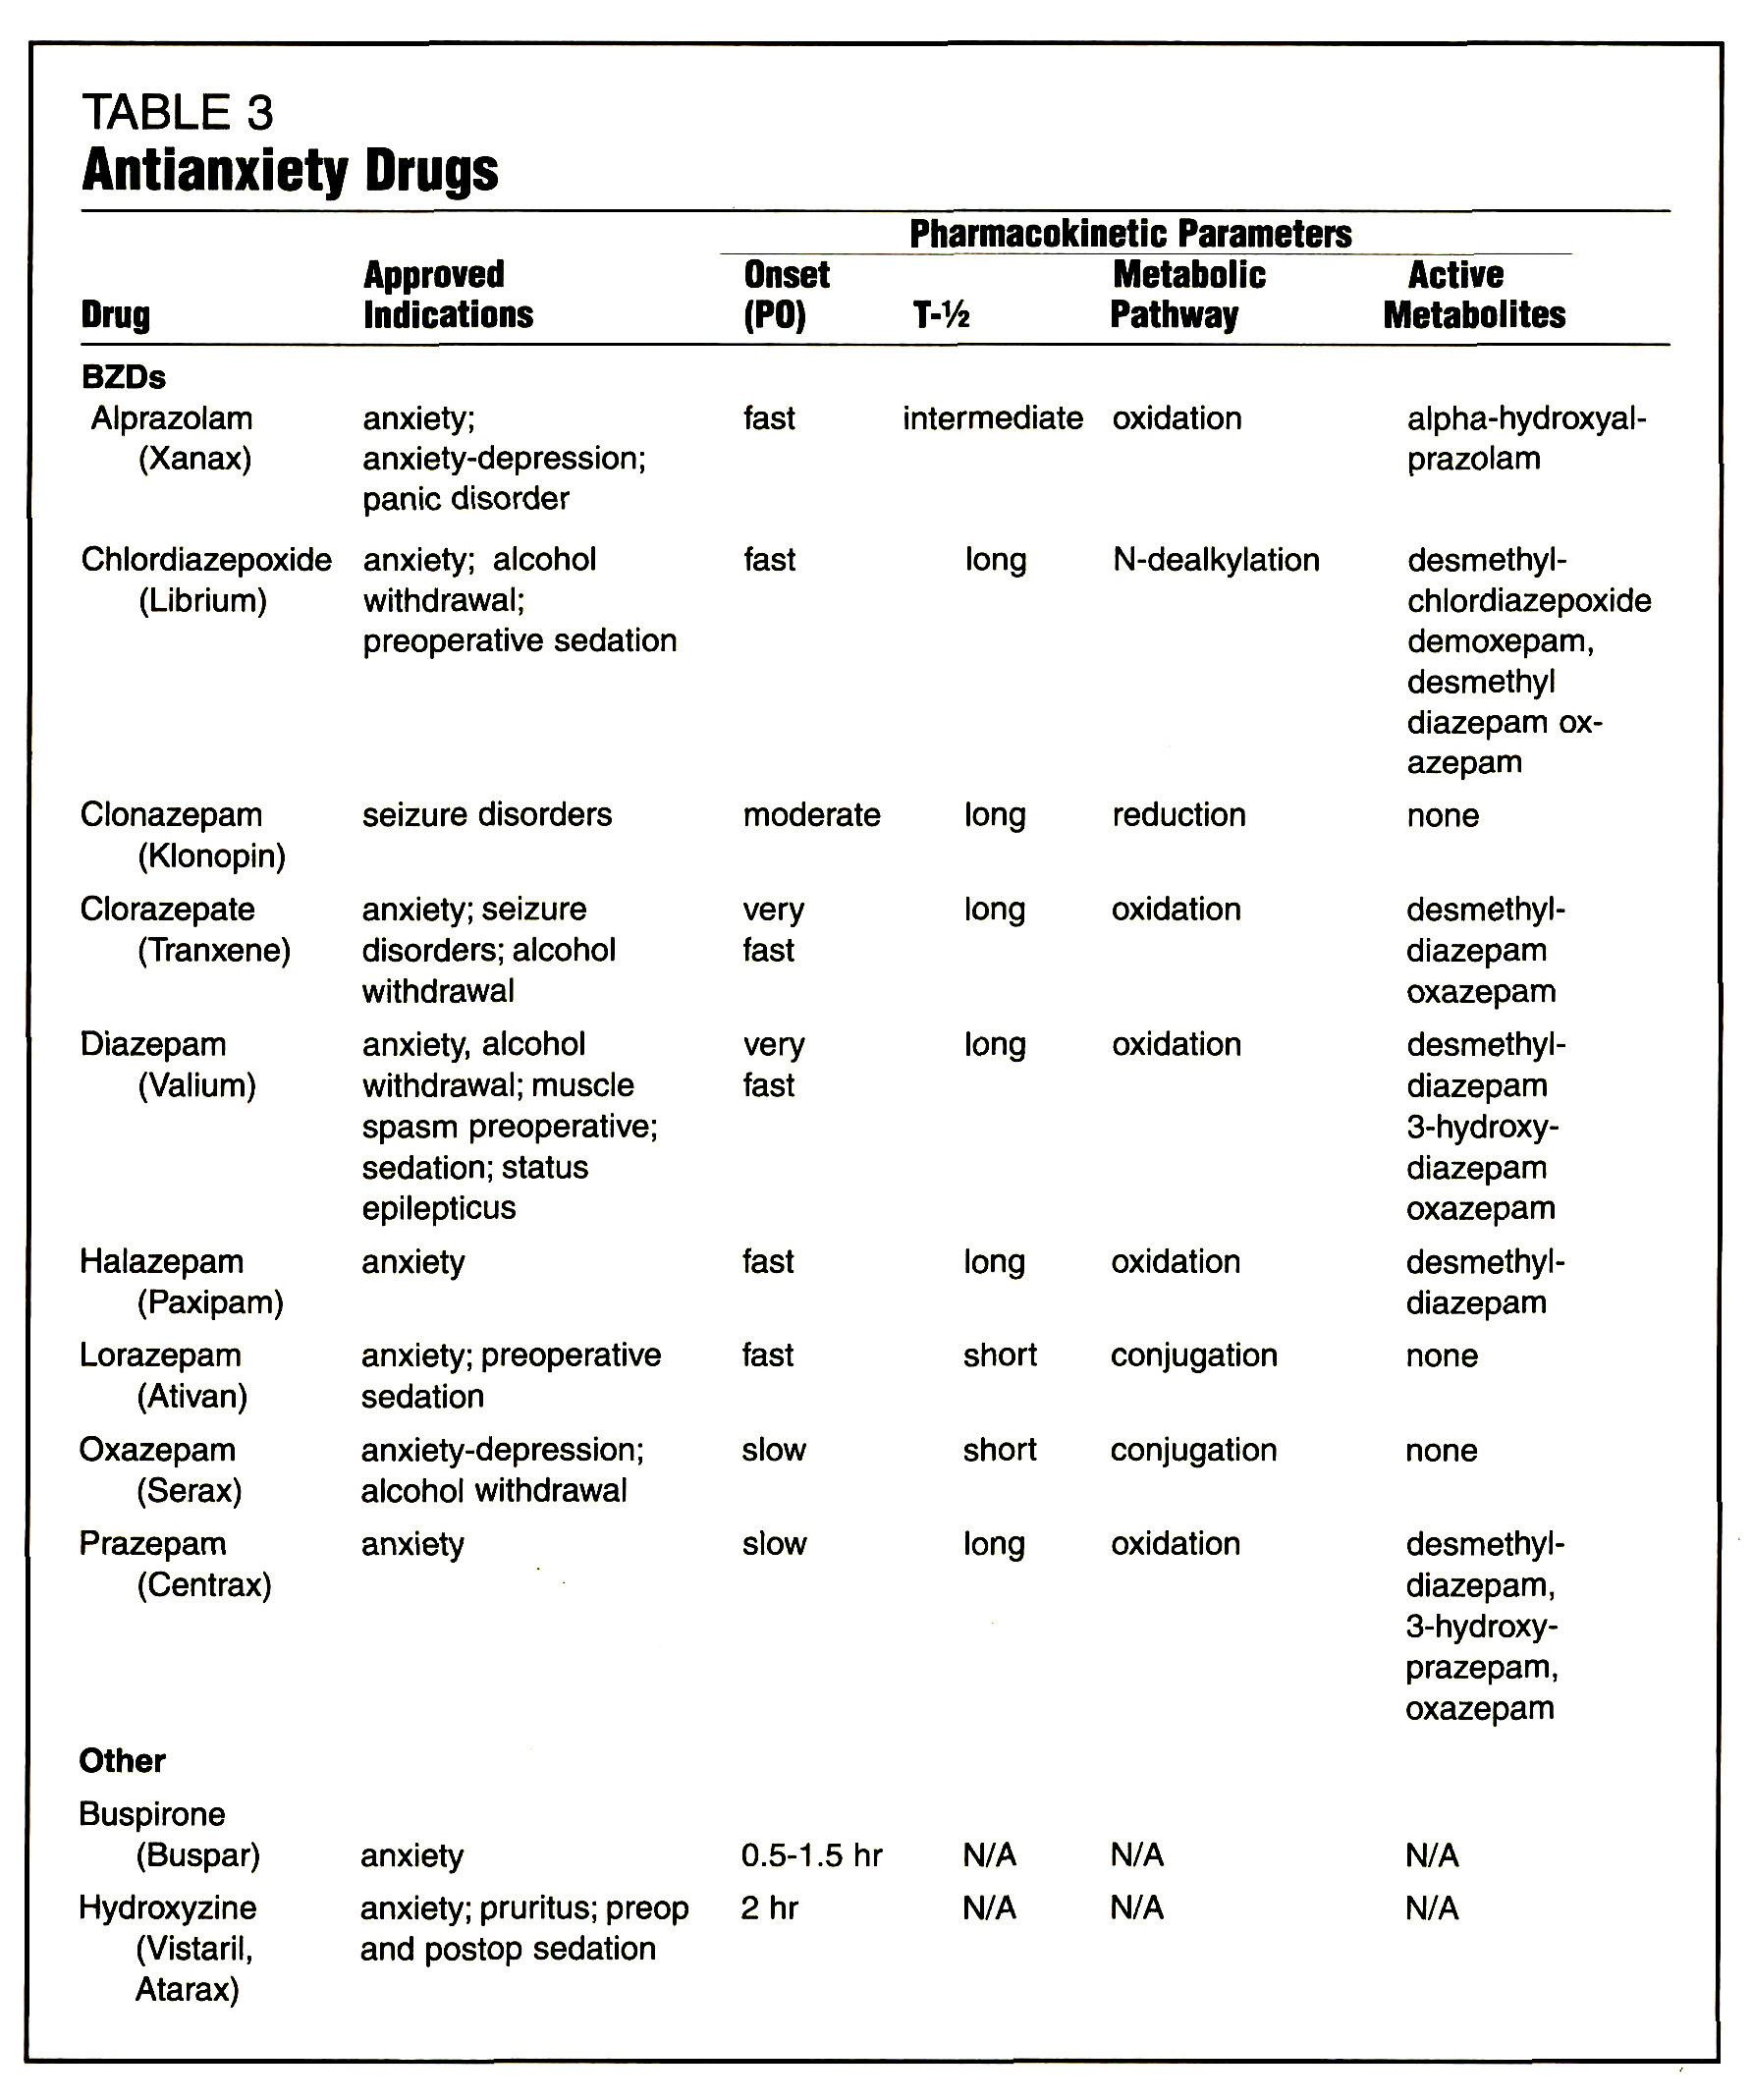 TABLE 3Antianxiety Drugs